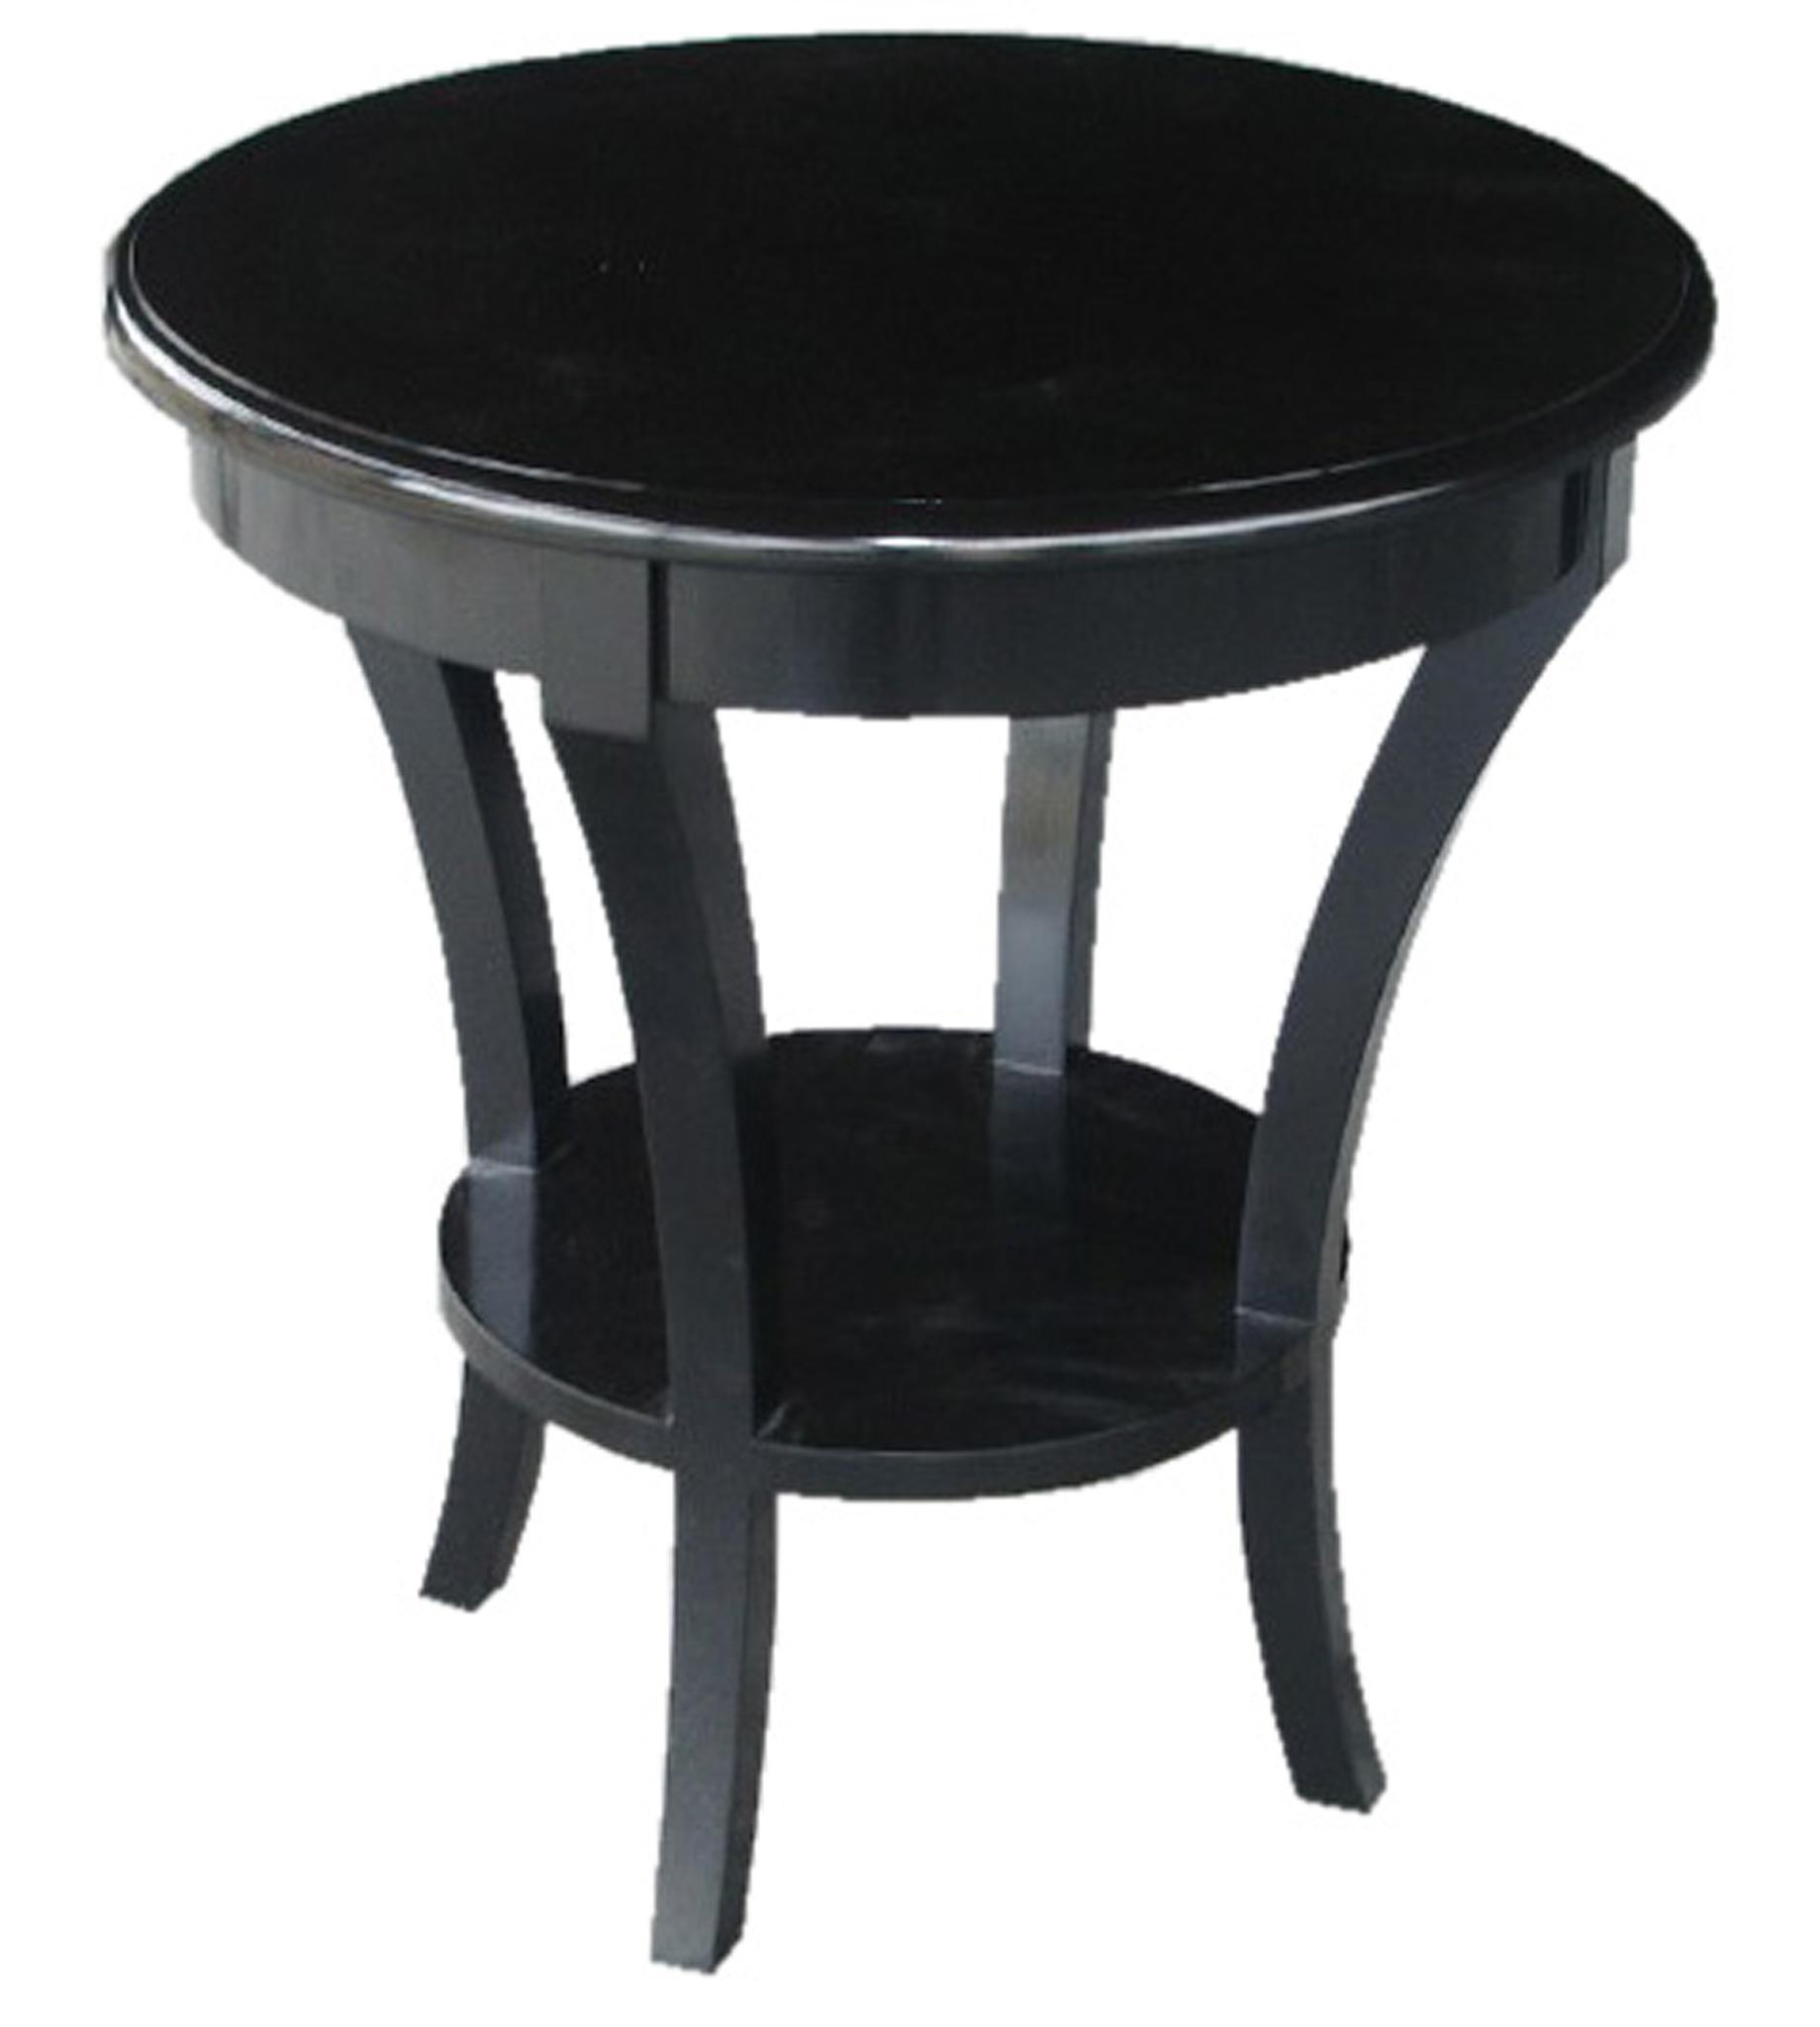 small round black side table designs accent with drawer white trestle dining triangle end west elm leather sectional battery operated desk lamp target dish sets clear crystal